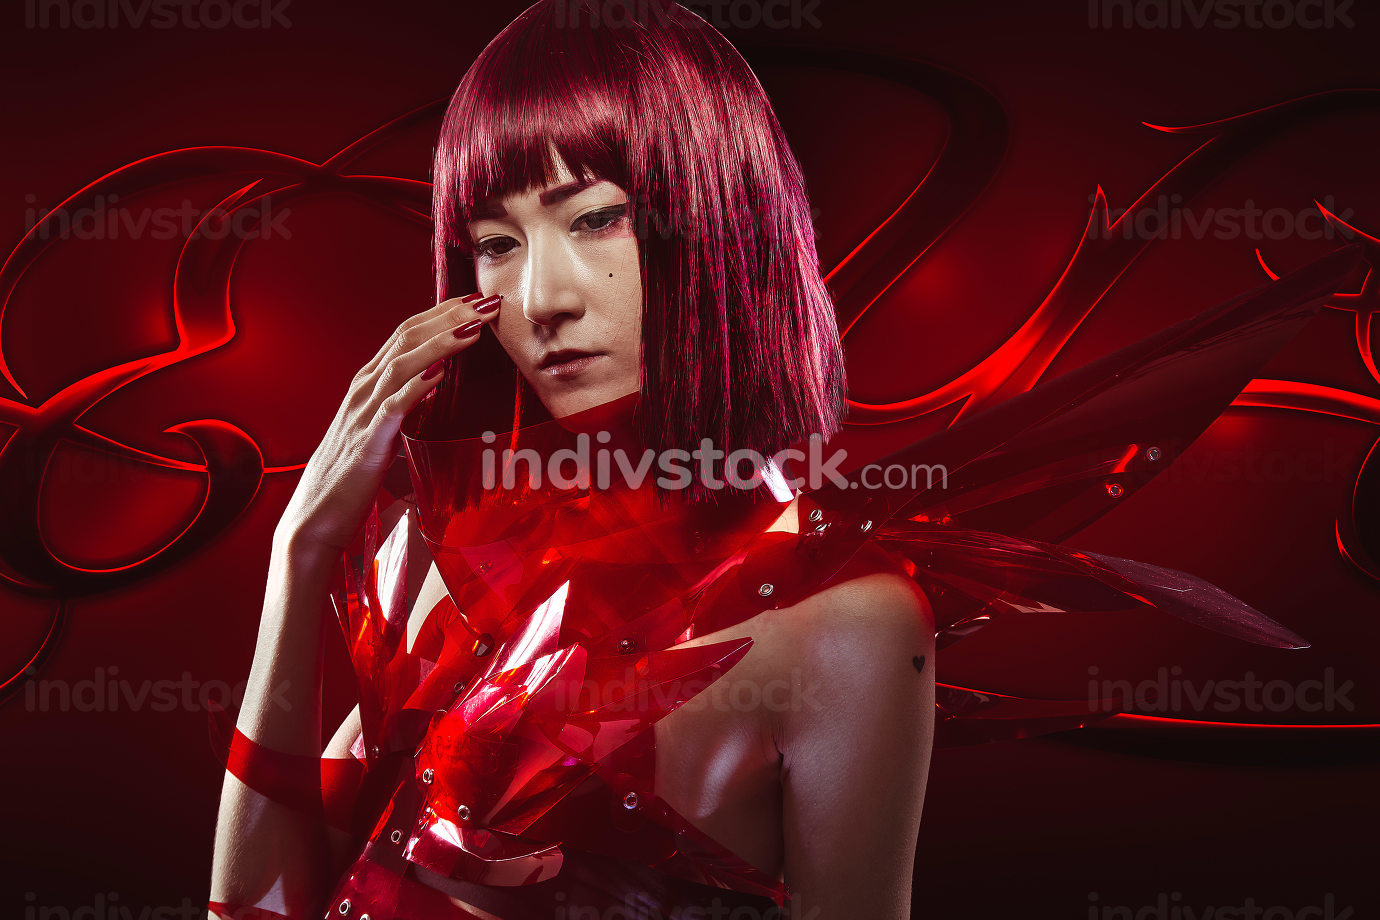 Asian girl with red dress transparencies, fantasy image and futu